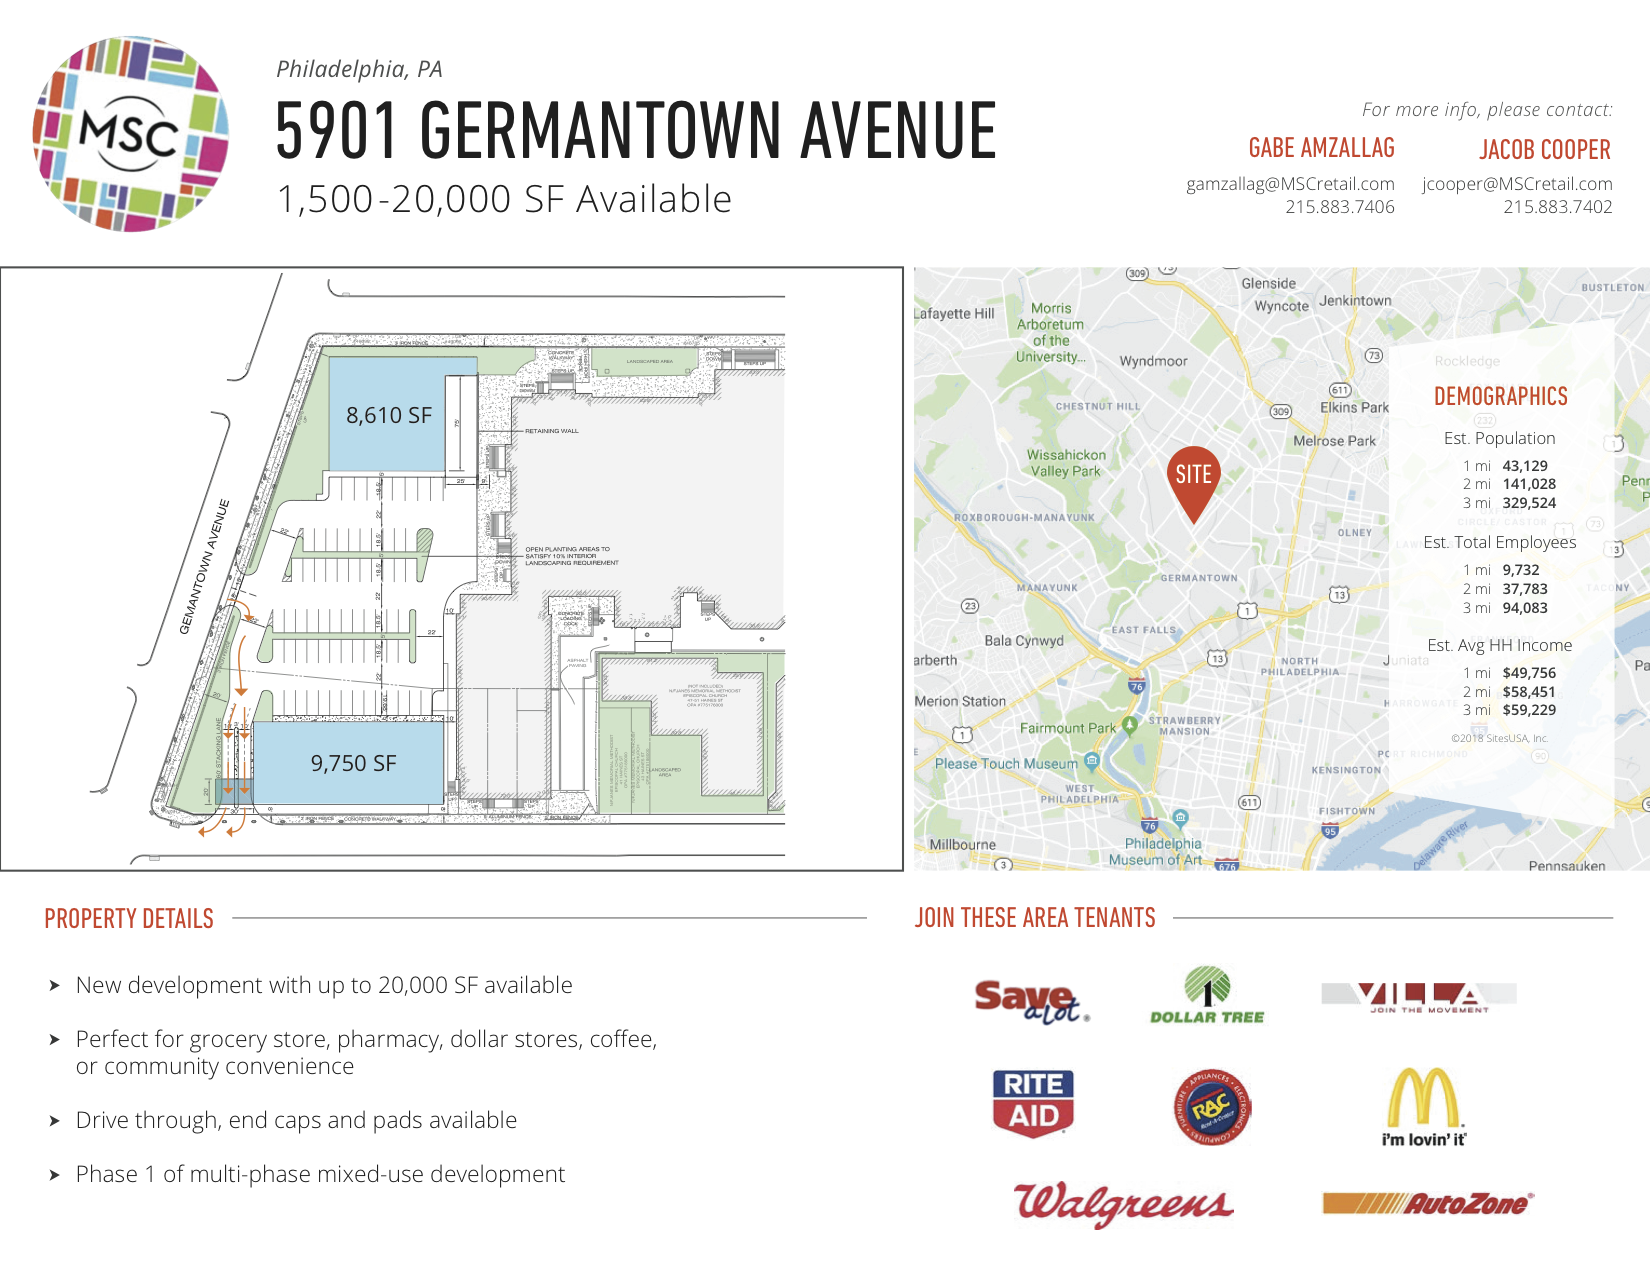 dd7ab5471d4b In January 2019, a real estate listing surfaced promoting development of  Germantown High School by a firm called MSC Realty.